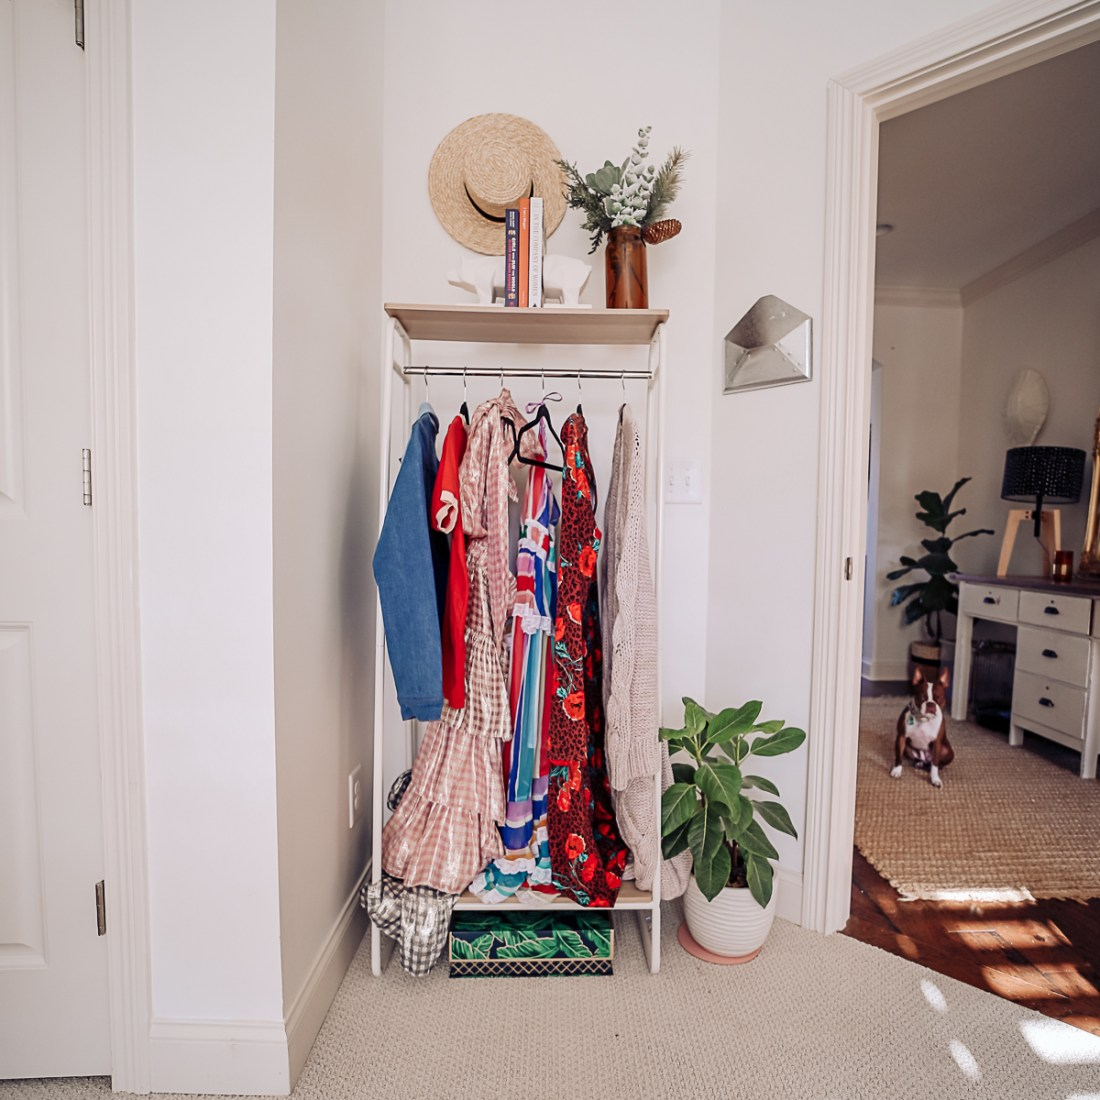 nuuly clothing rental review | Nuuly Review by popular Nashville life and style blog, Modern Day Moguls: image of vintage clothing hanging on a clothing rack.